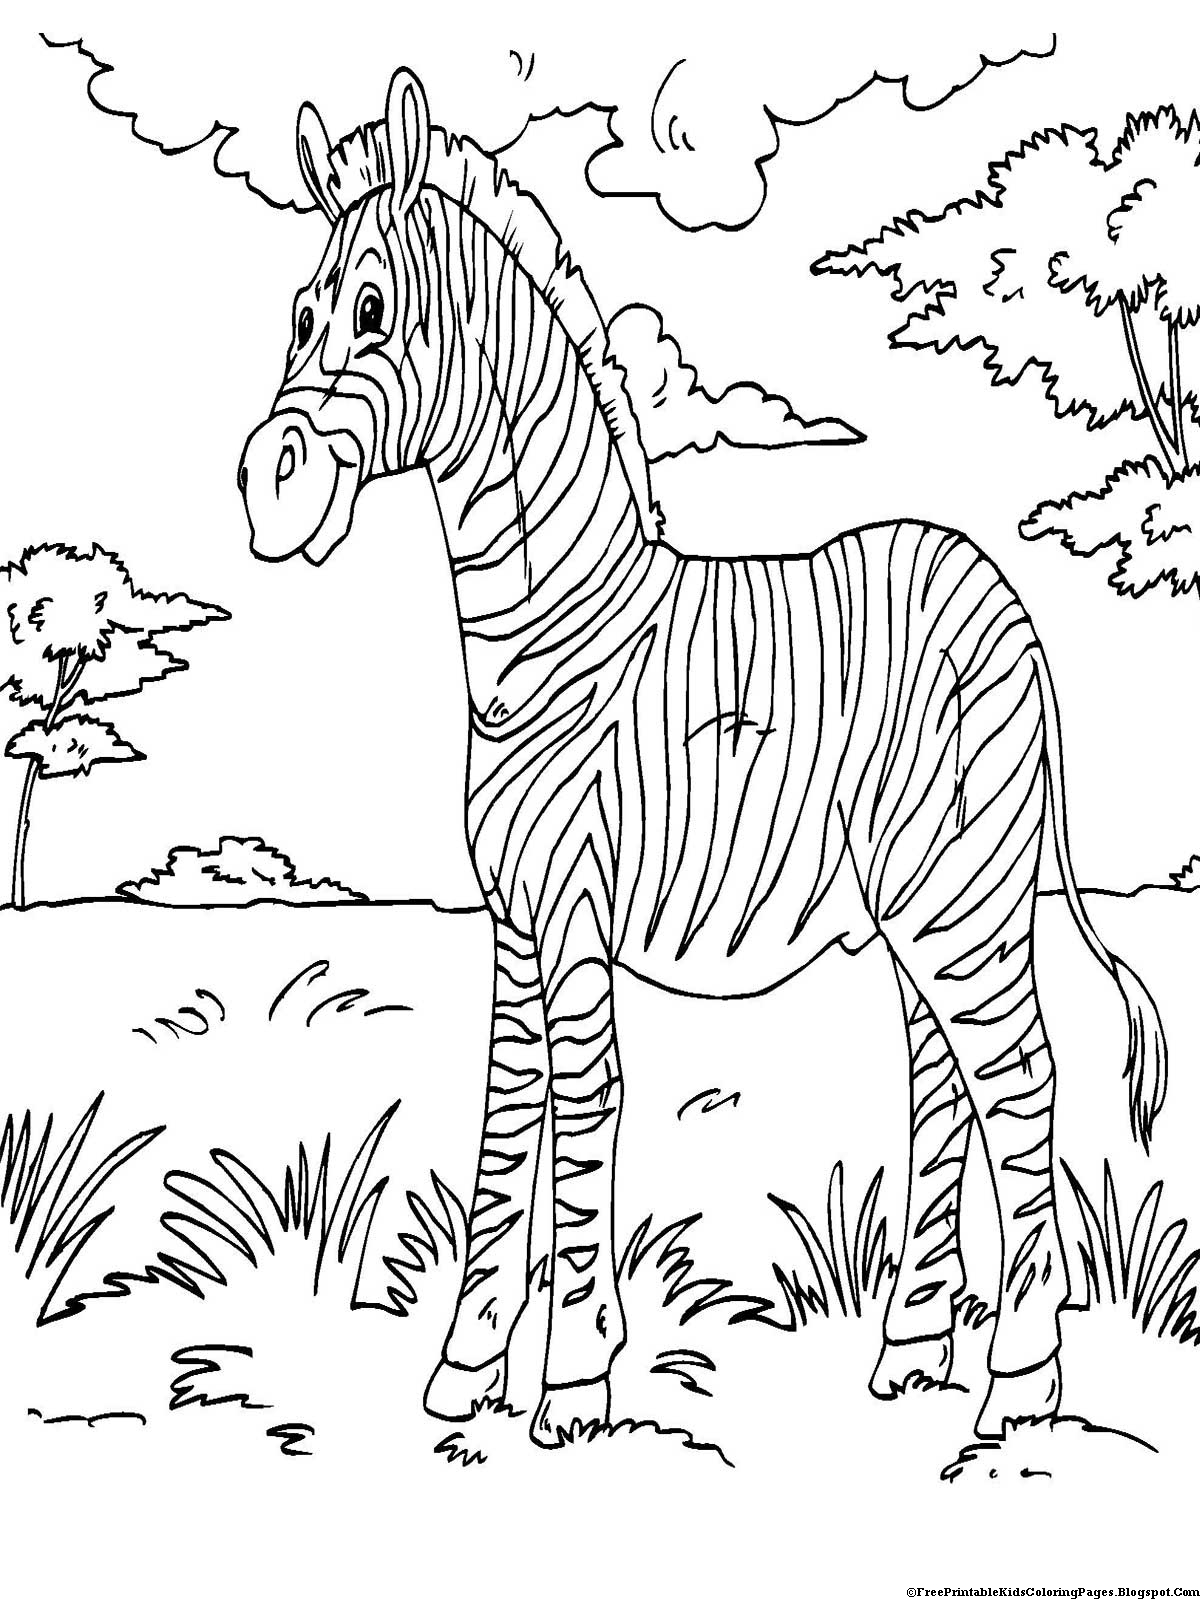 zebra print coloring pages zebra coloring pages to download and print for free pages zebra print coloring